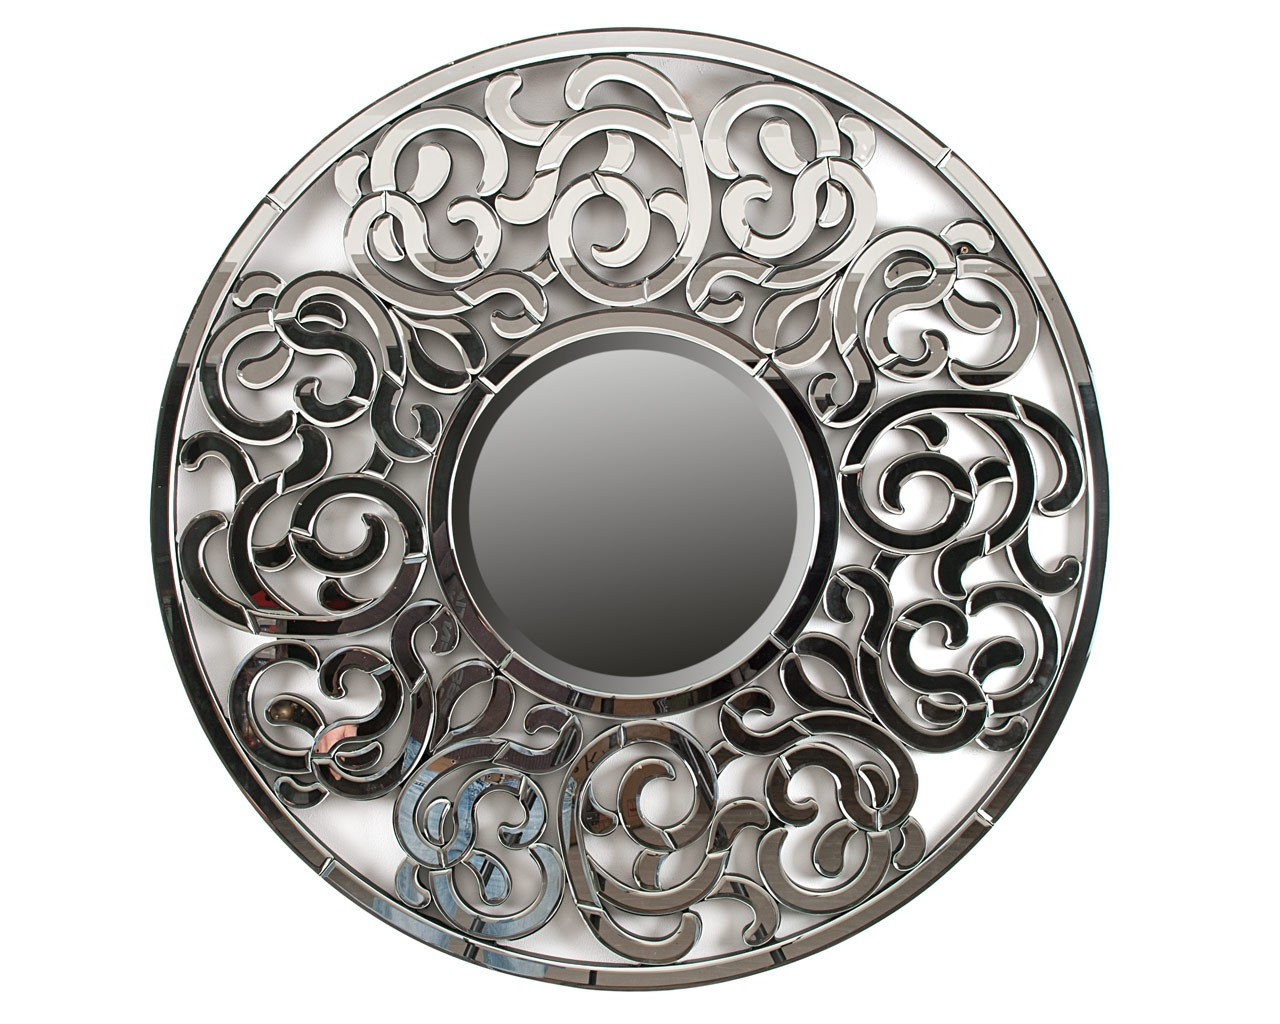 Ornate Round Mirror Designer Wall Art Puji Accessories Intended For Ornate Round Mirror (Image 5 of 15)